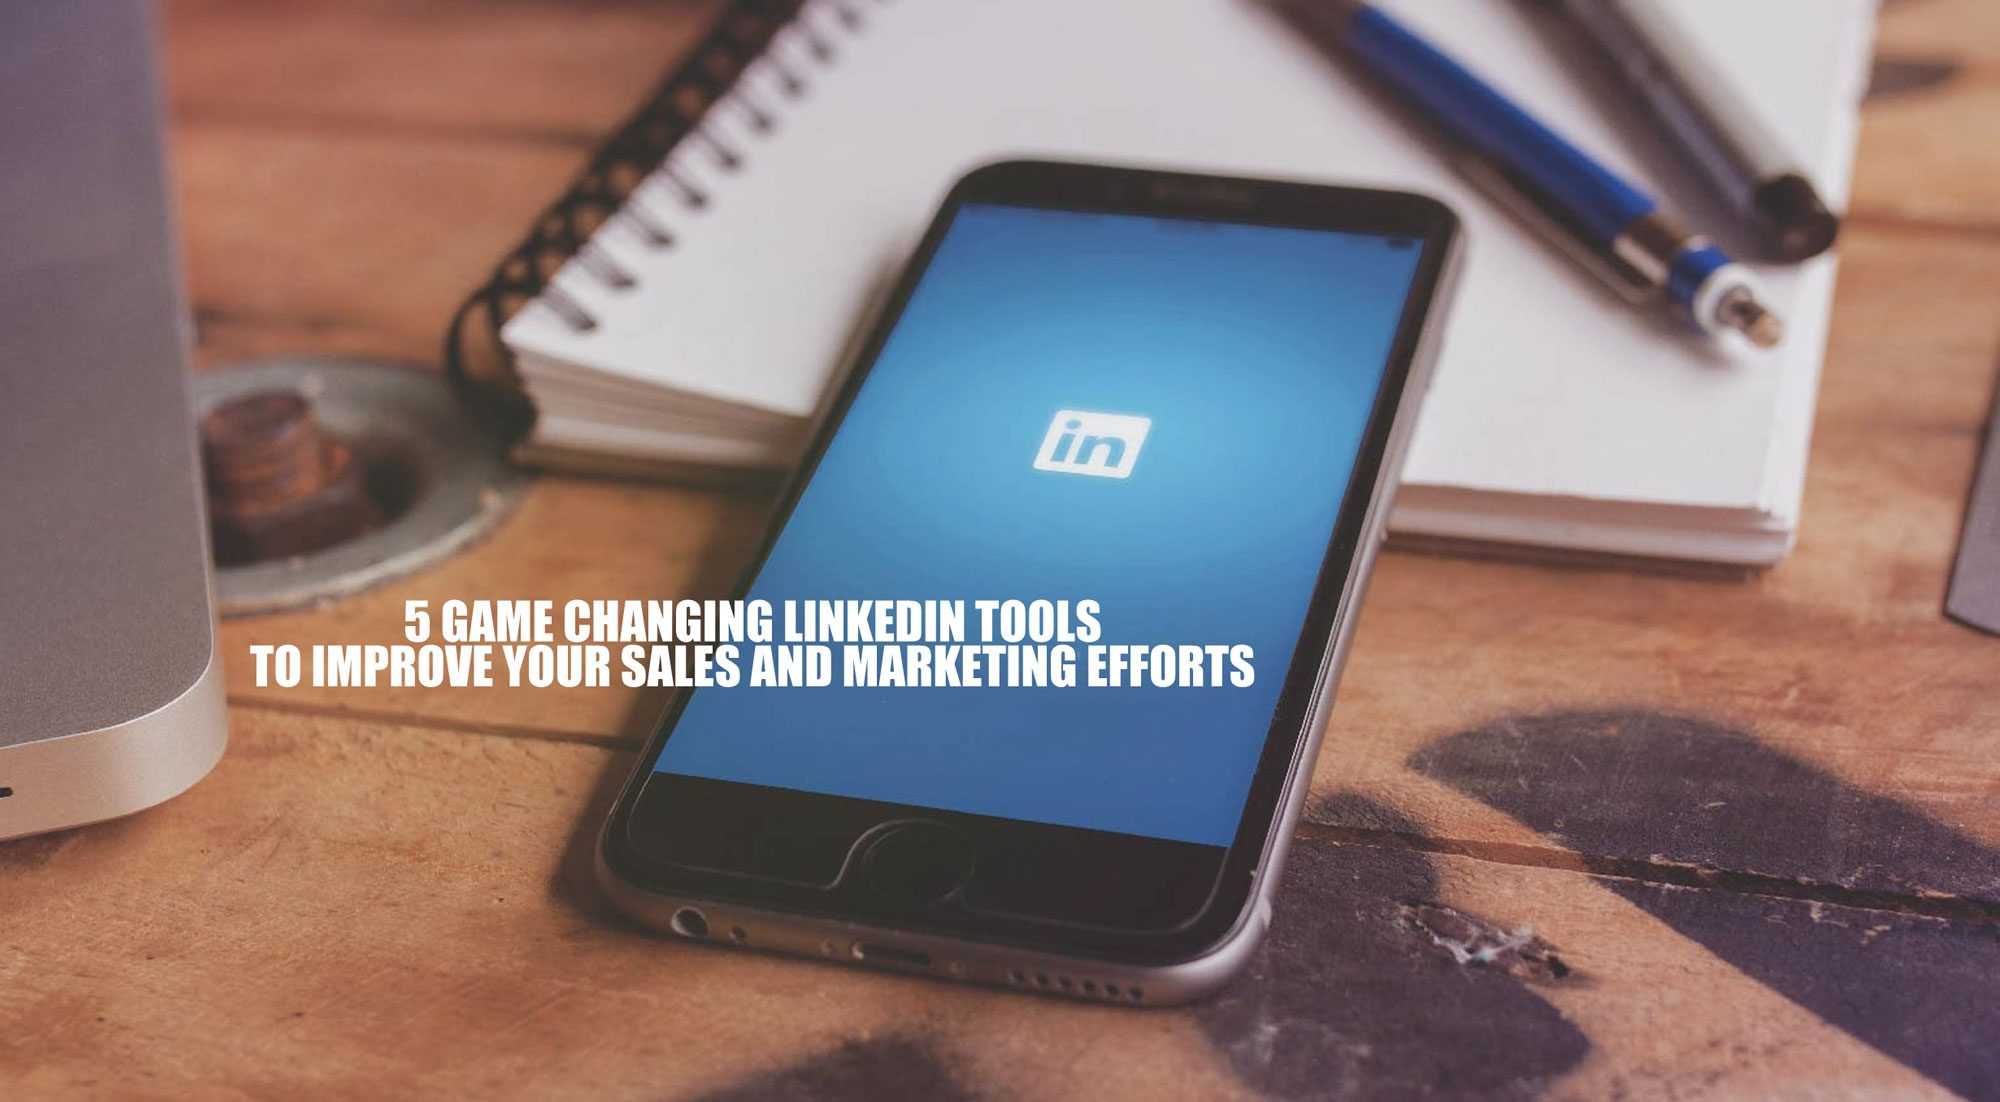 5 Game Changing LinkedIn Tools To Improve Your Sales and Marketing Efforts-1marketingidea